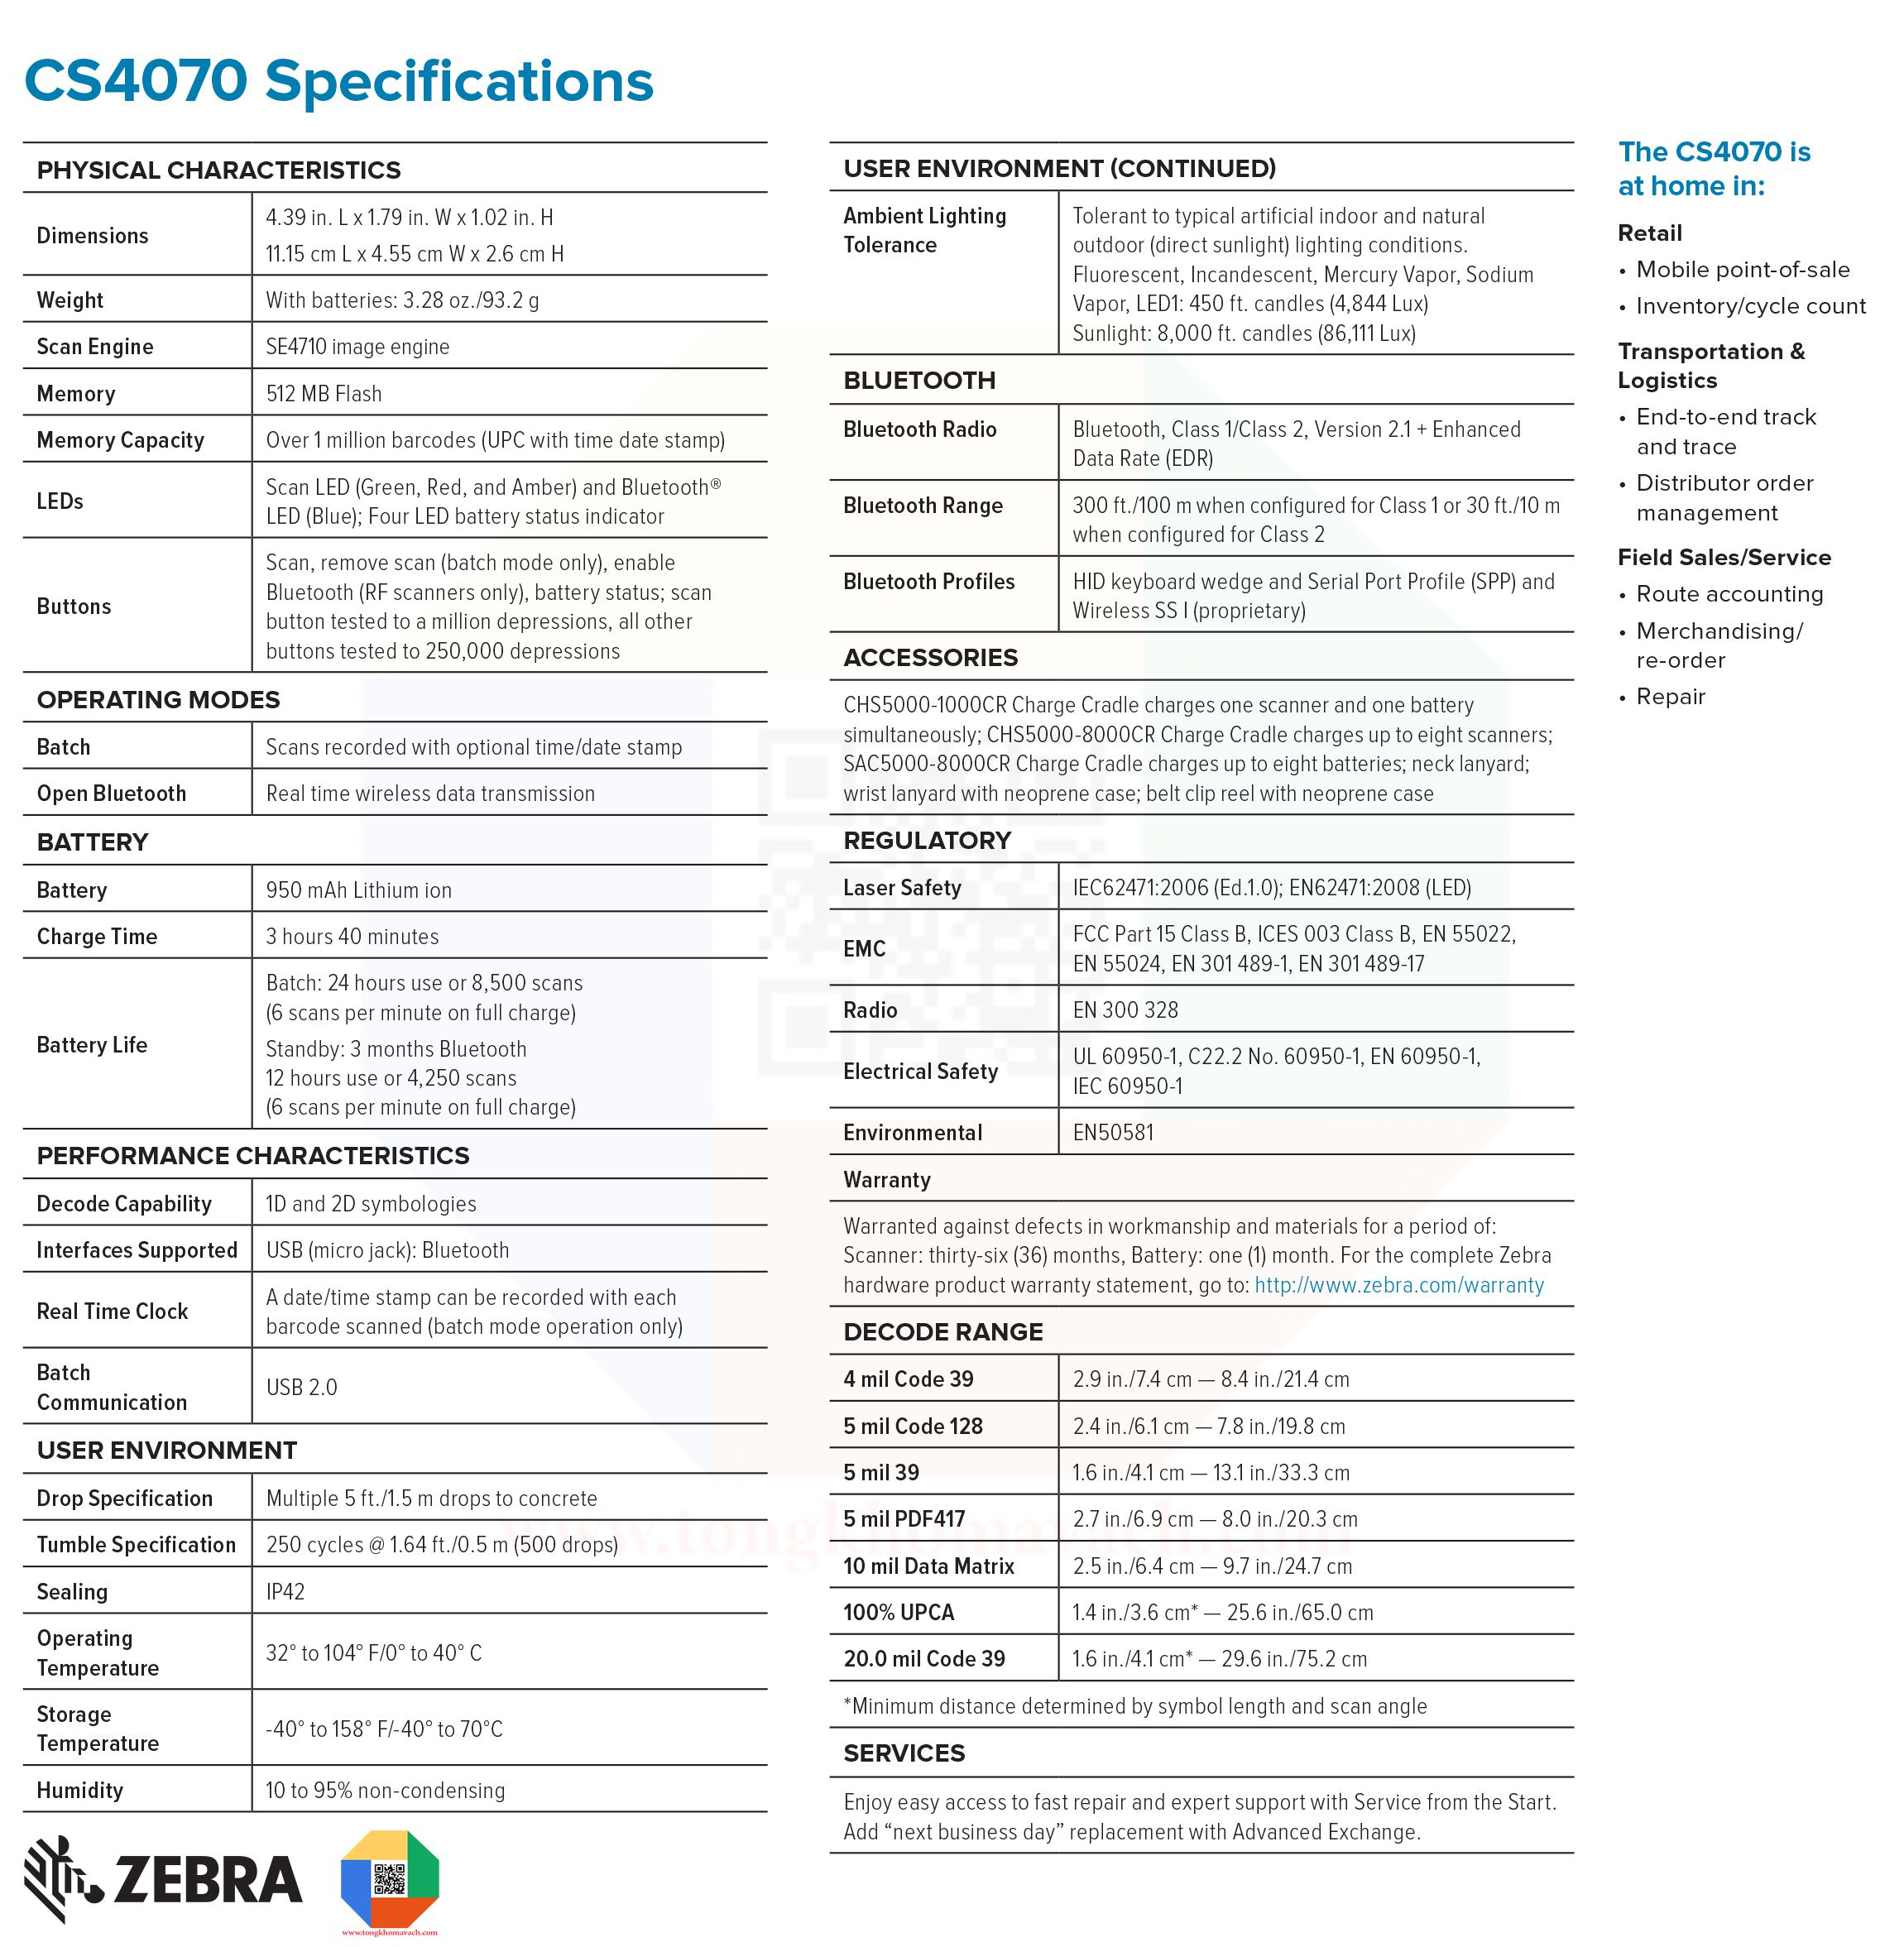 cs4070-specification.jpg